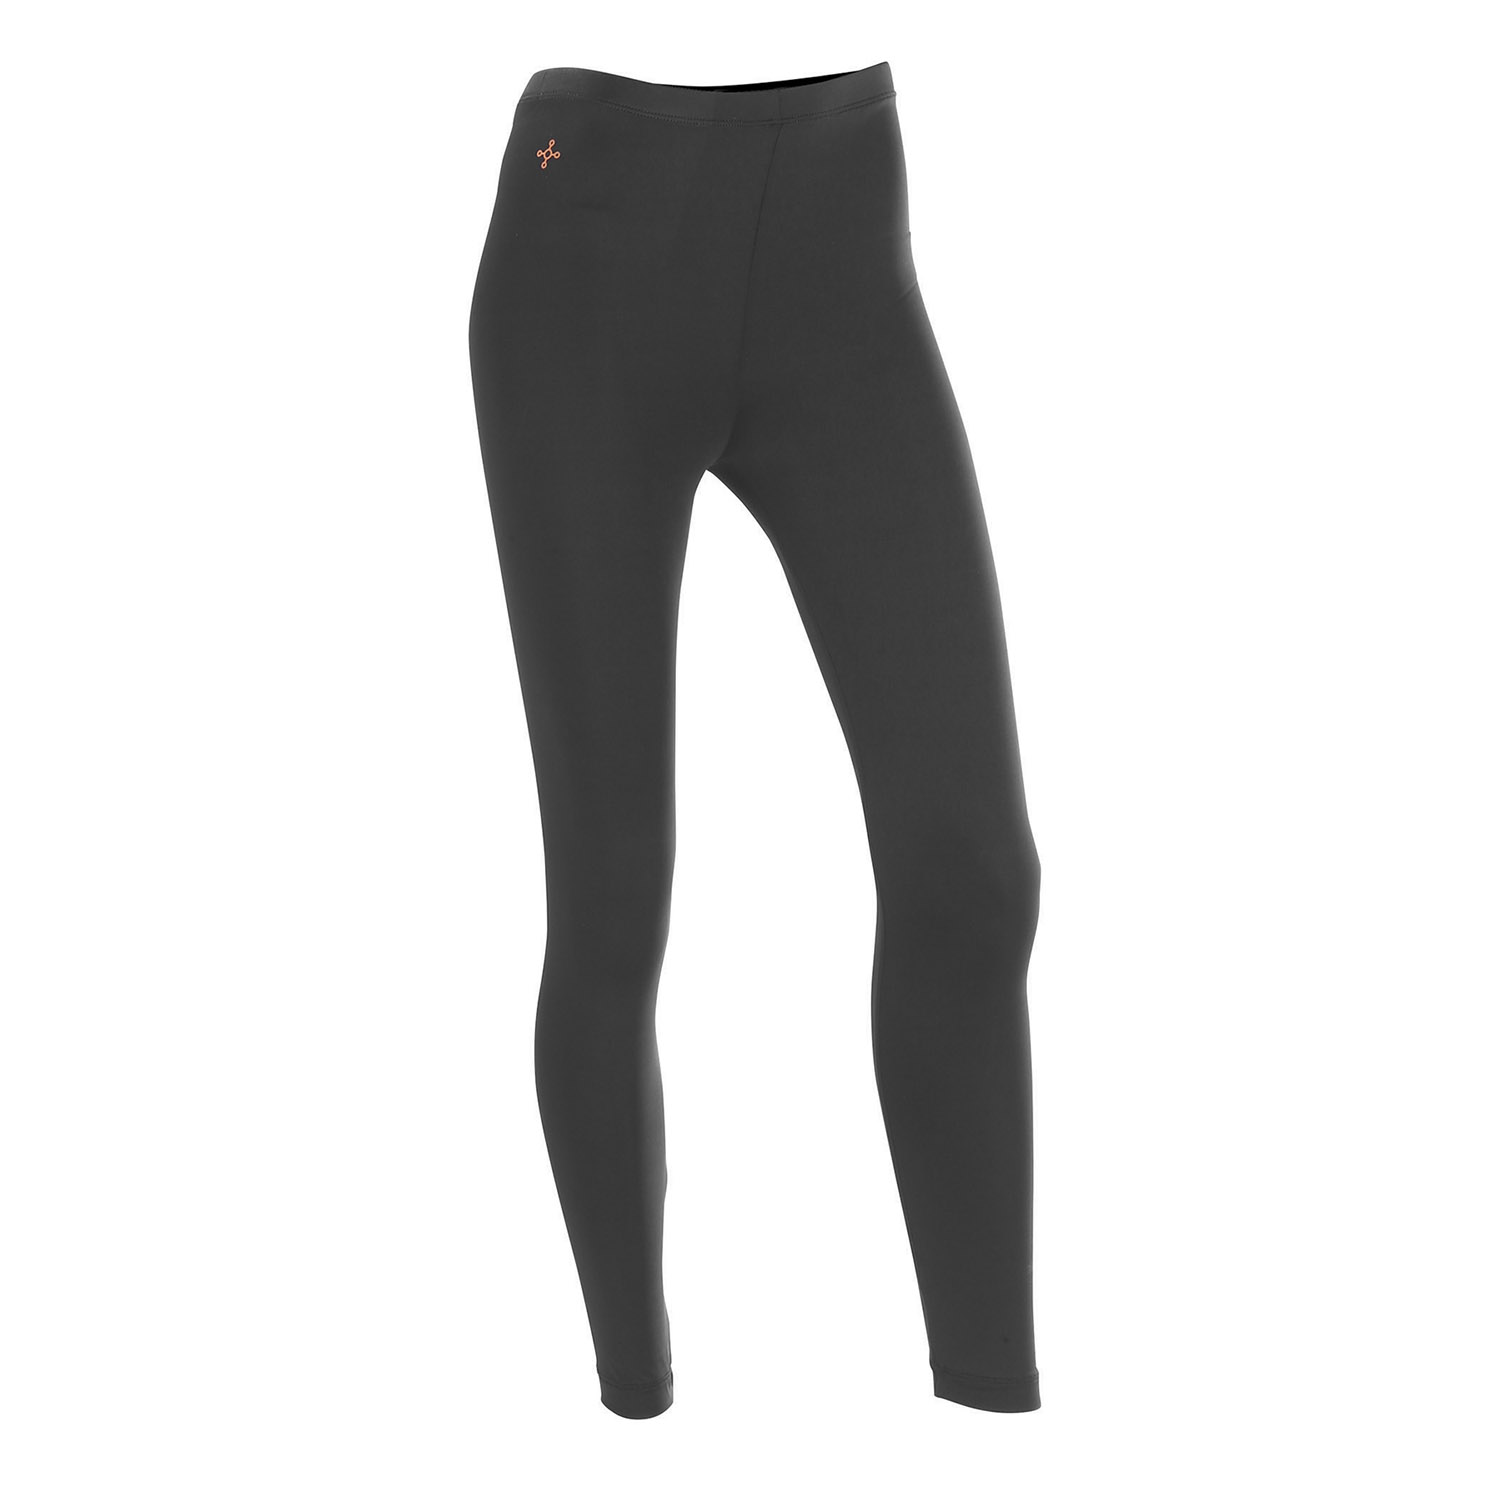 Tommie Copper Women's Rise Above Recovery Compression Tights